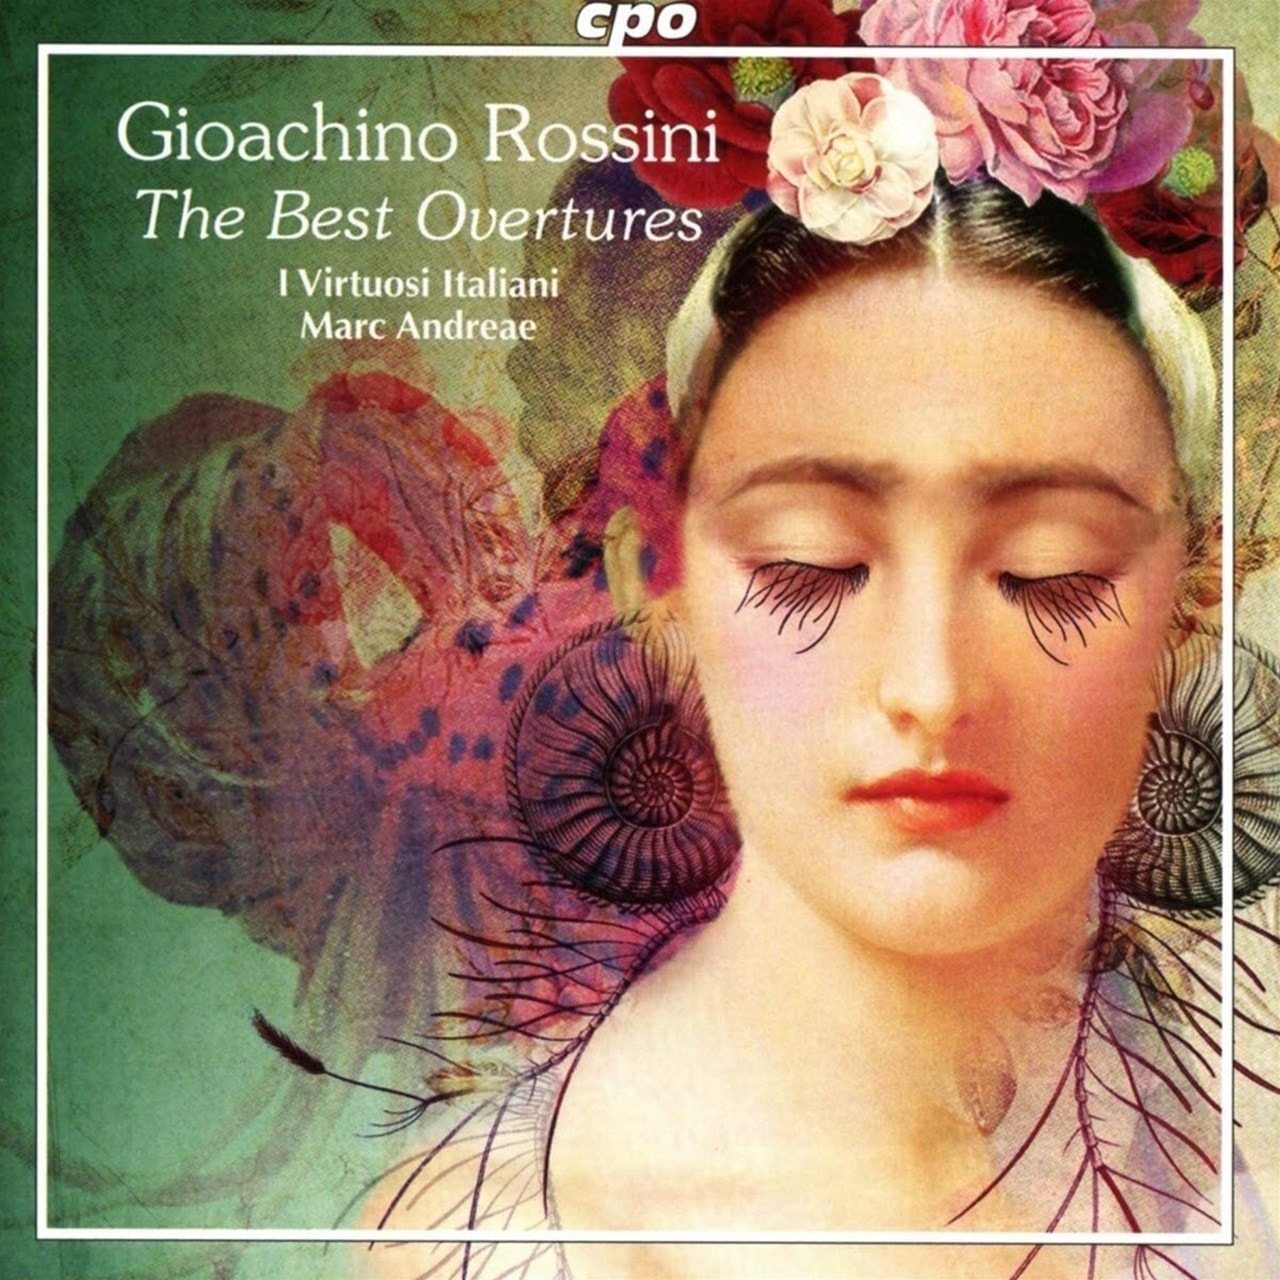 Gioachino Rossini: The Best Overtures - 1